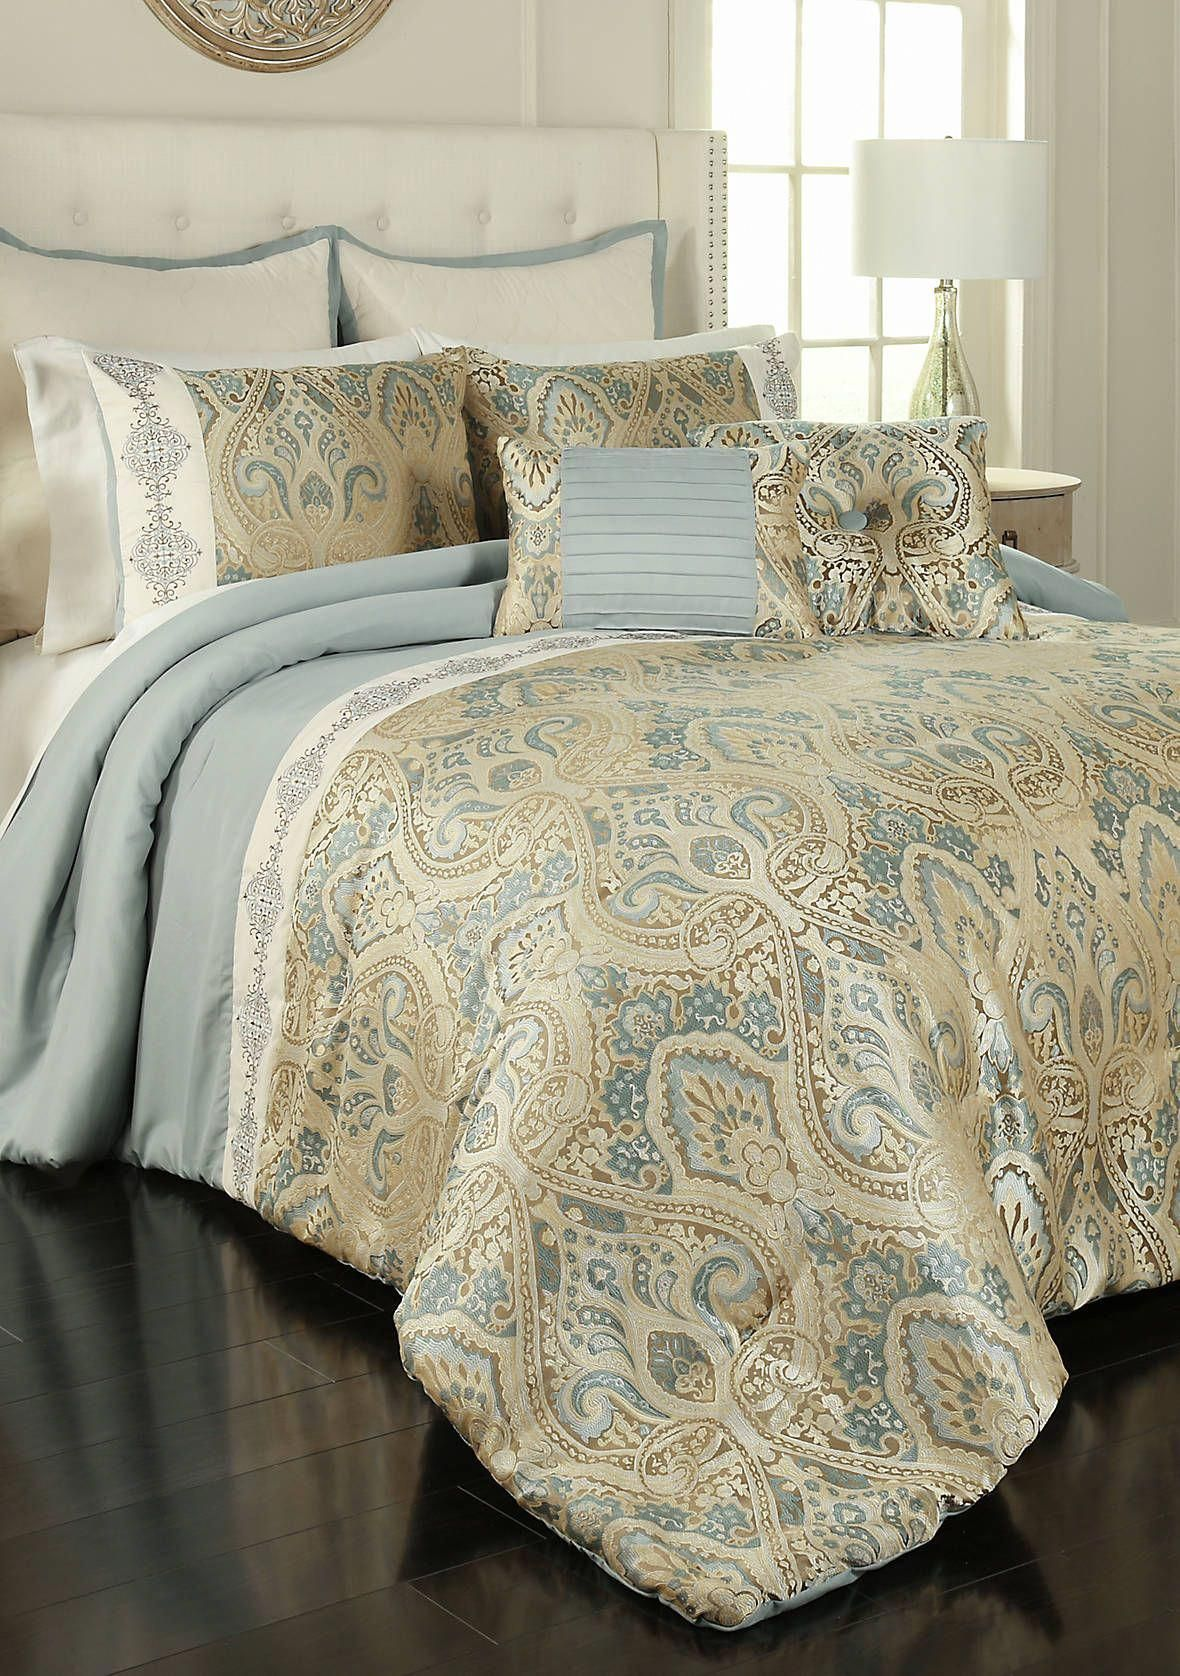 Inexpensive Bedding Websites BeddingSetsQueenCotton